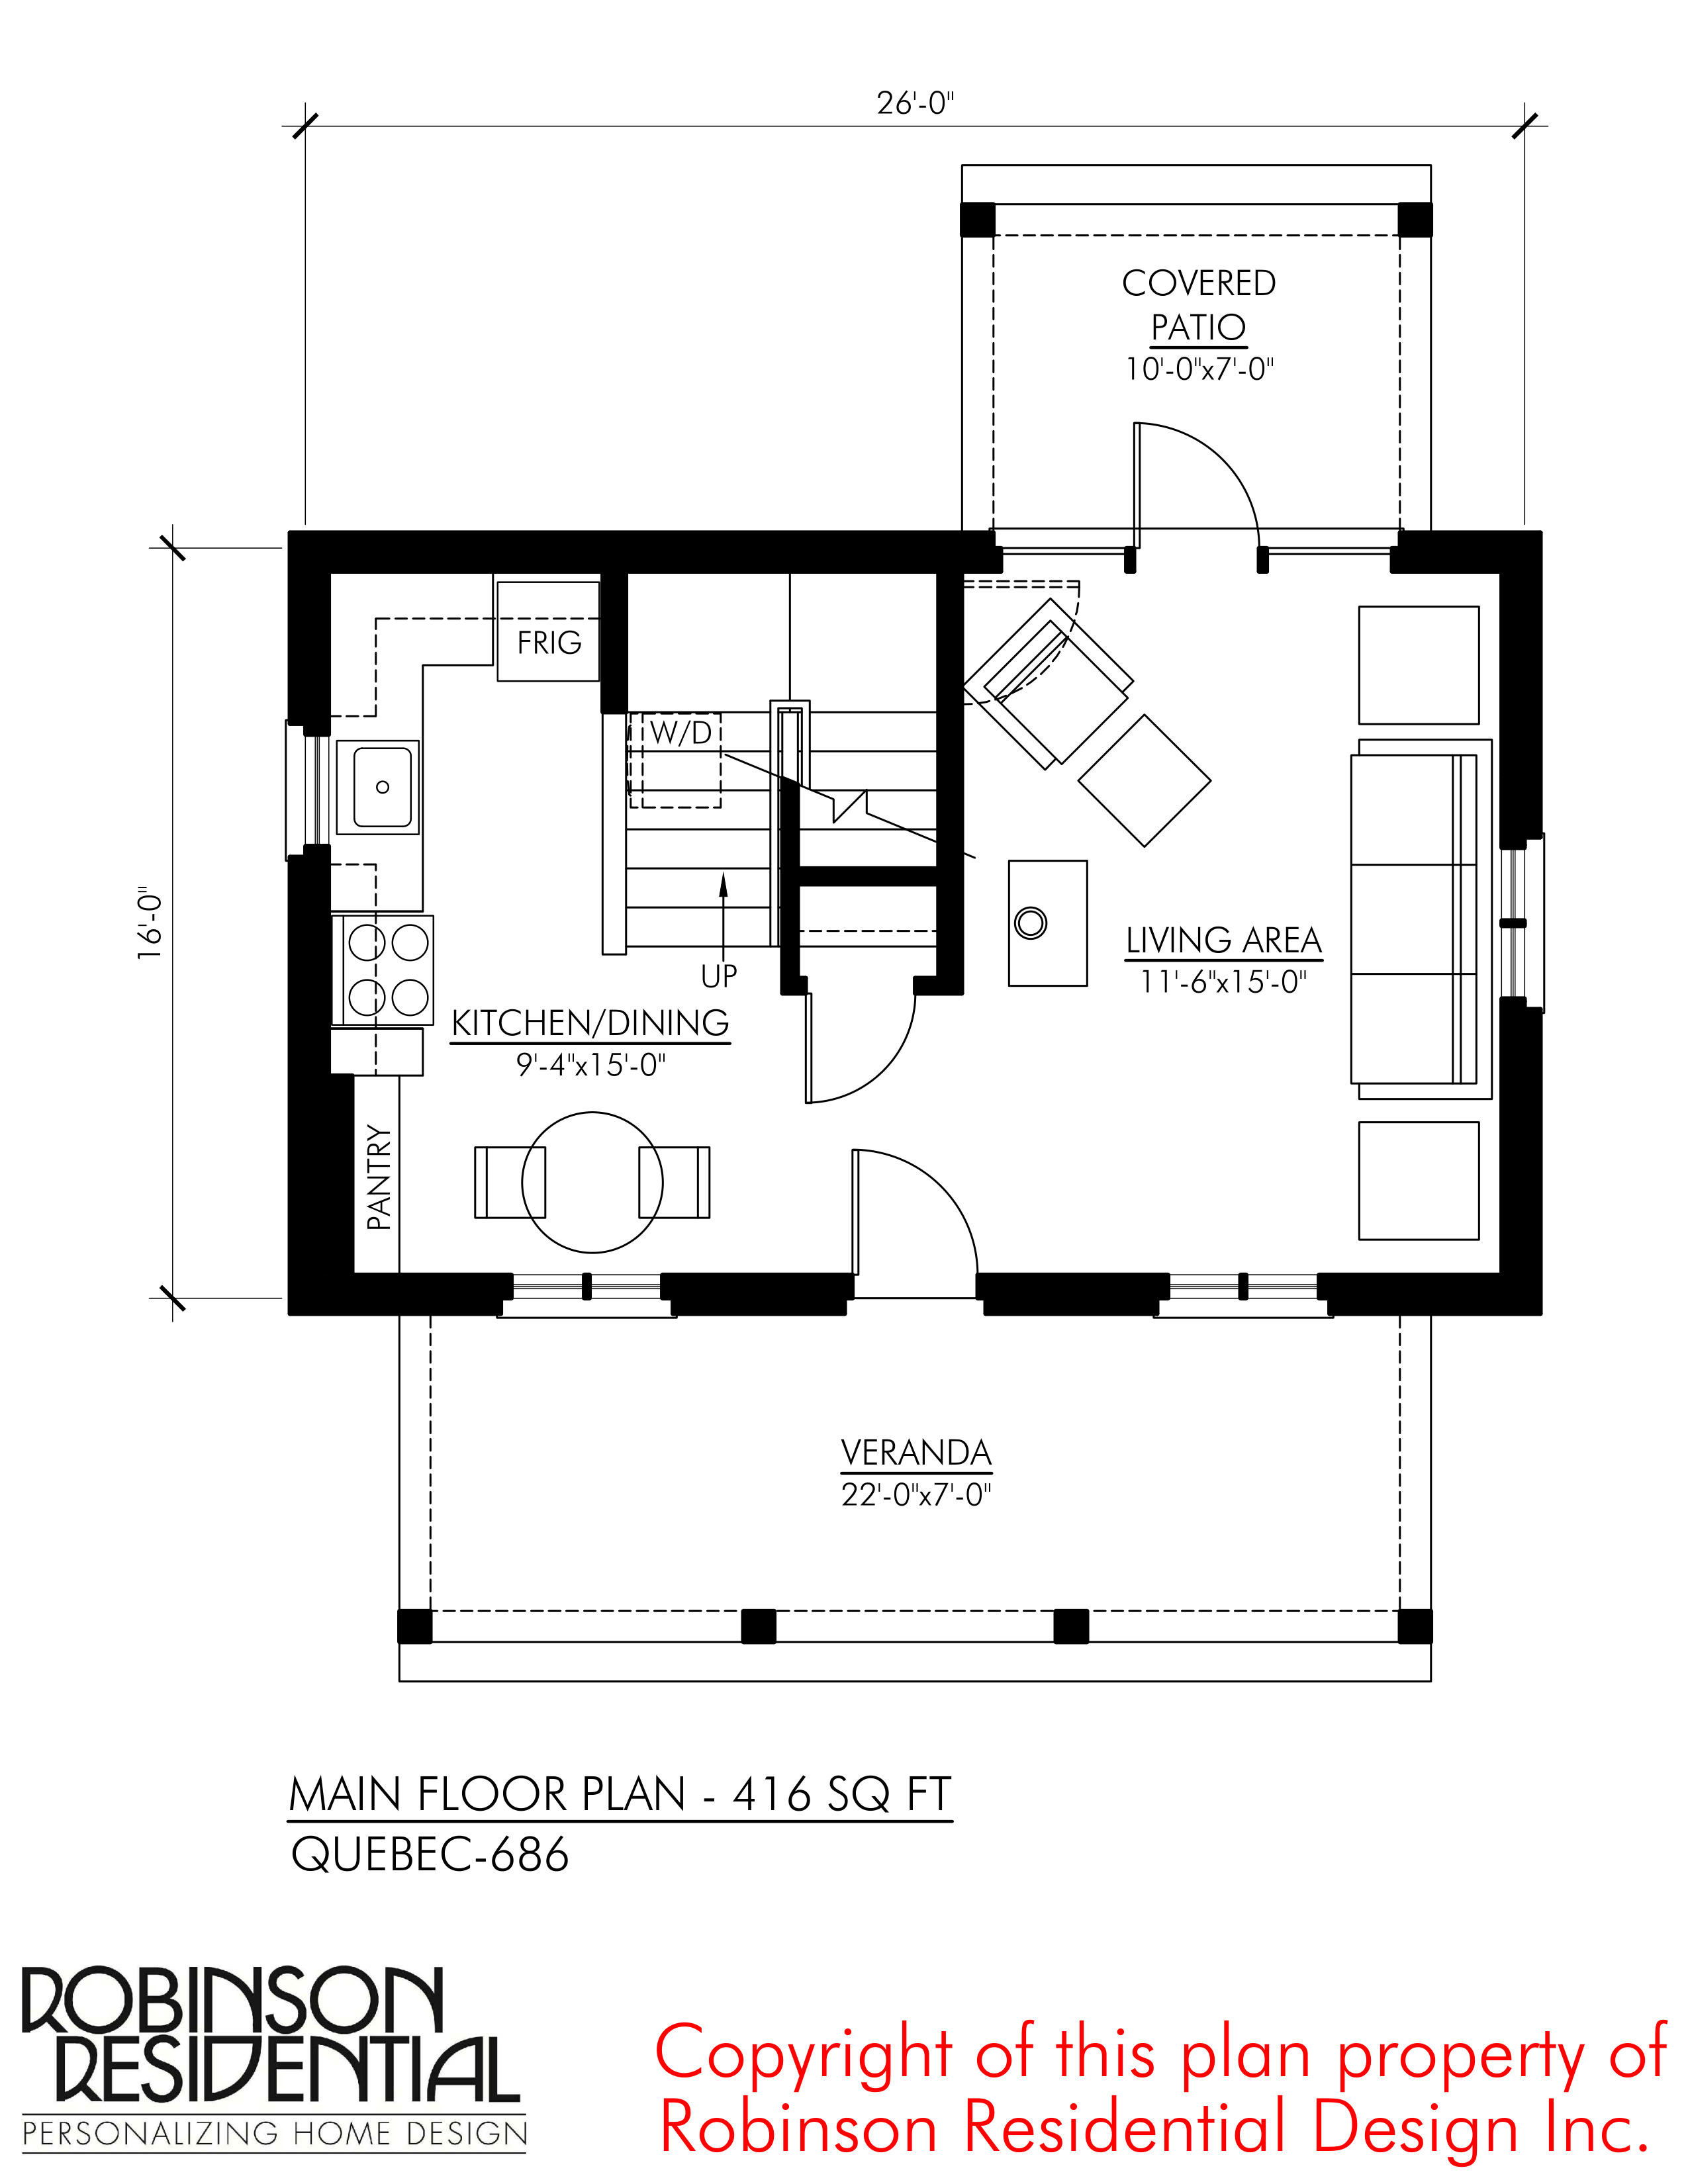 Small House Plans for Seniors Awesome Quebec 686